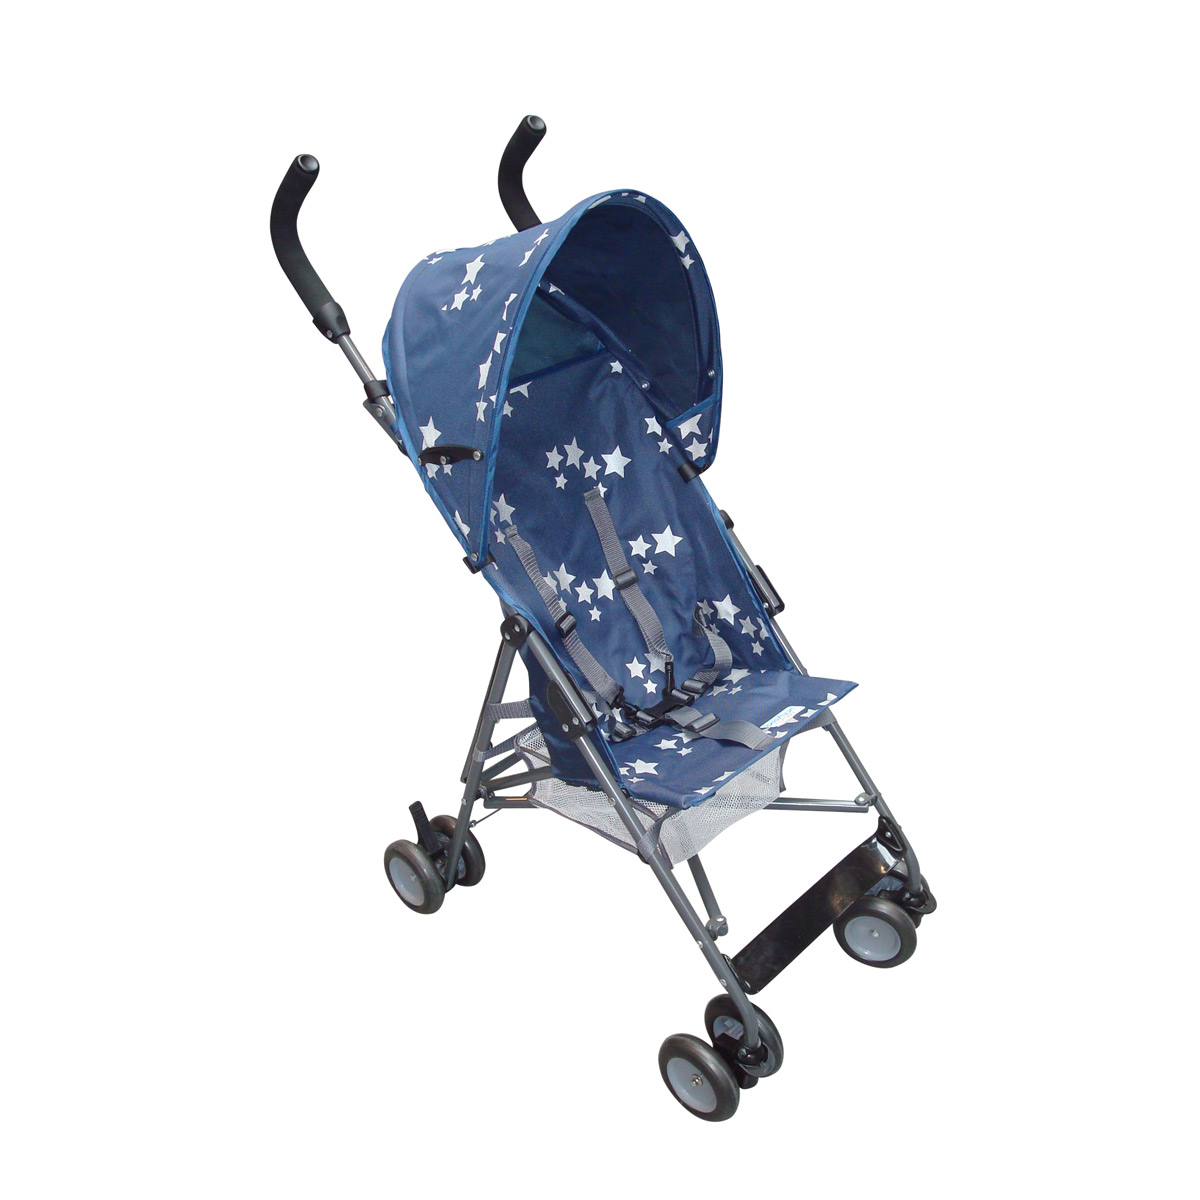 Test poussette canne buggy j babysun - Poussette canne legere inclinable ...